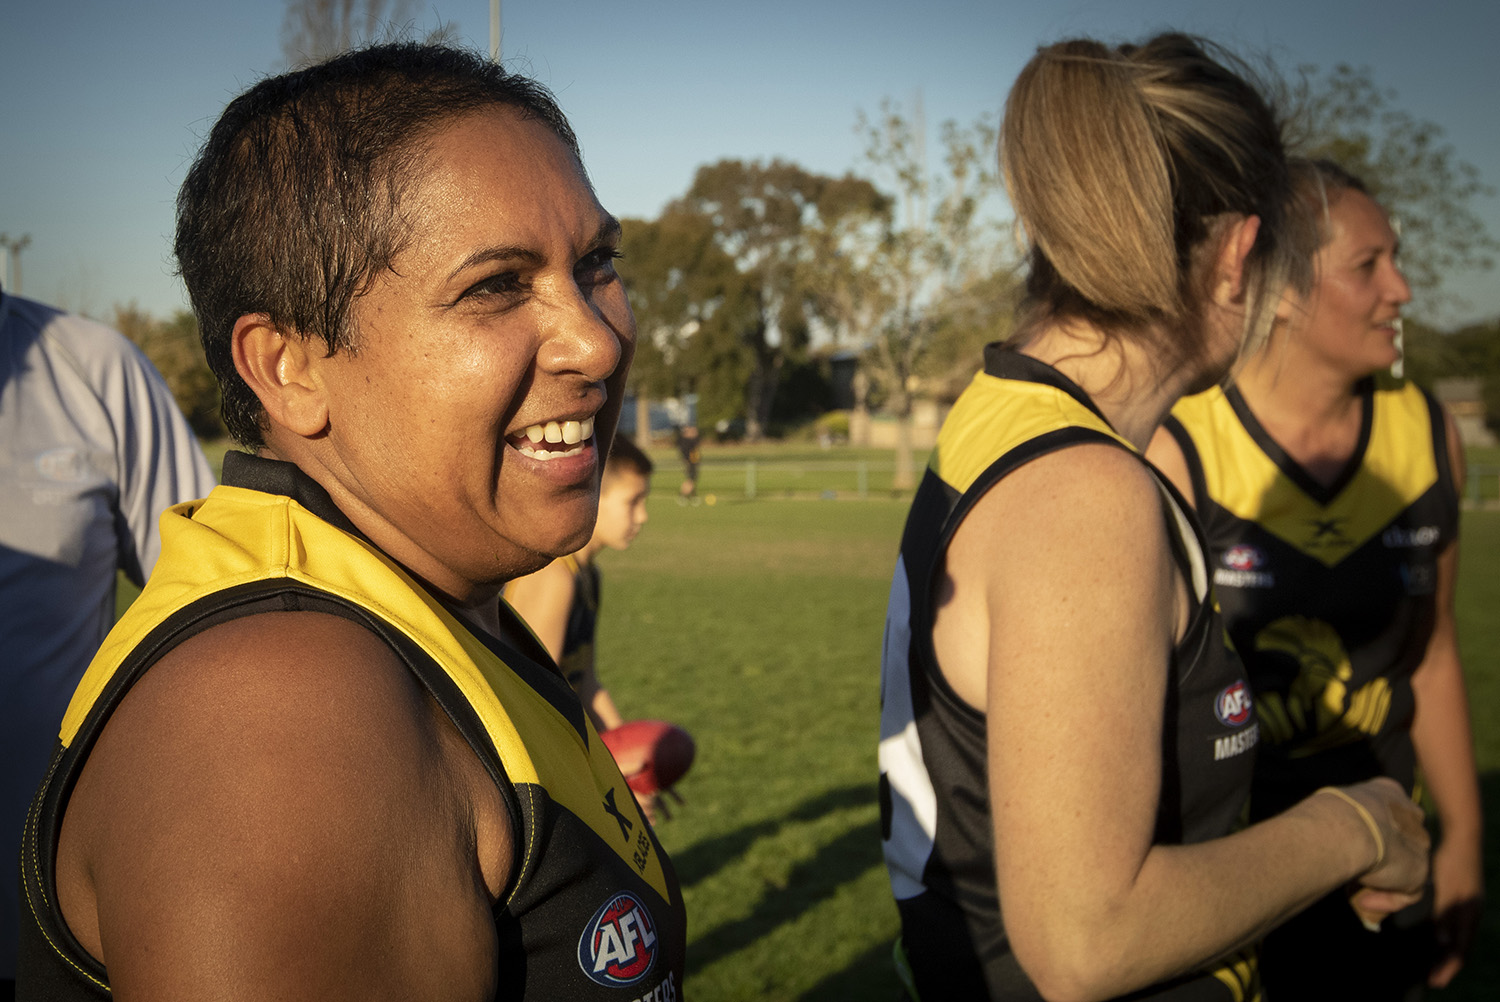 Anita O'Shea has engaged a new group of friends in pursuing a common sporting goal courtesy of the fledgling AFL Women's Masters football competition.